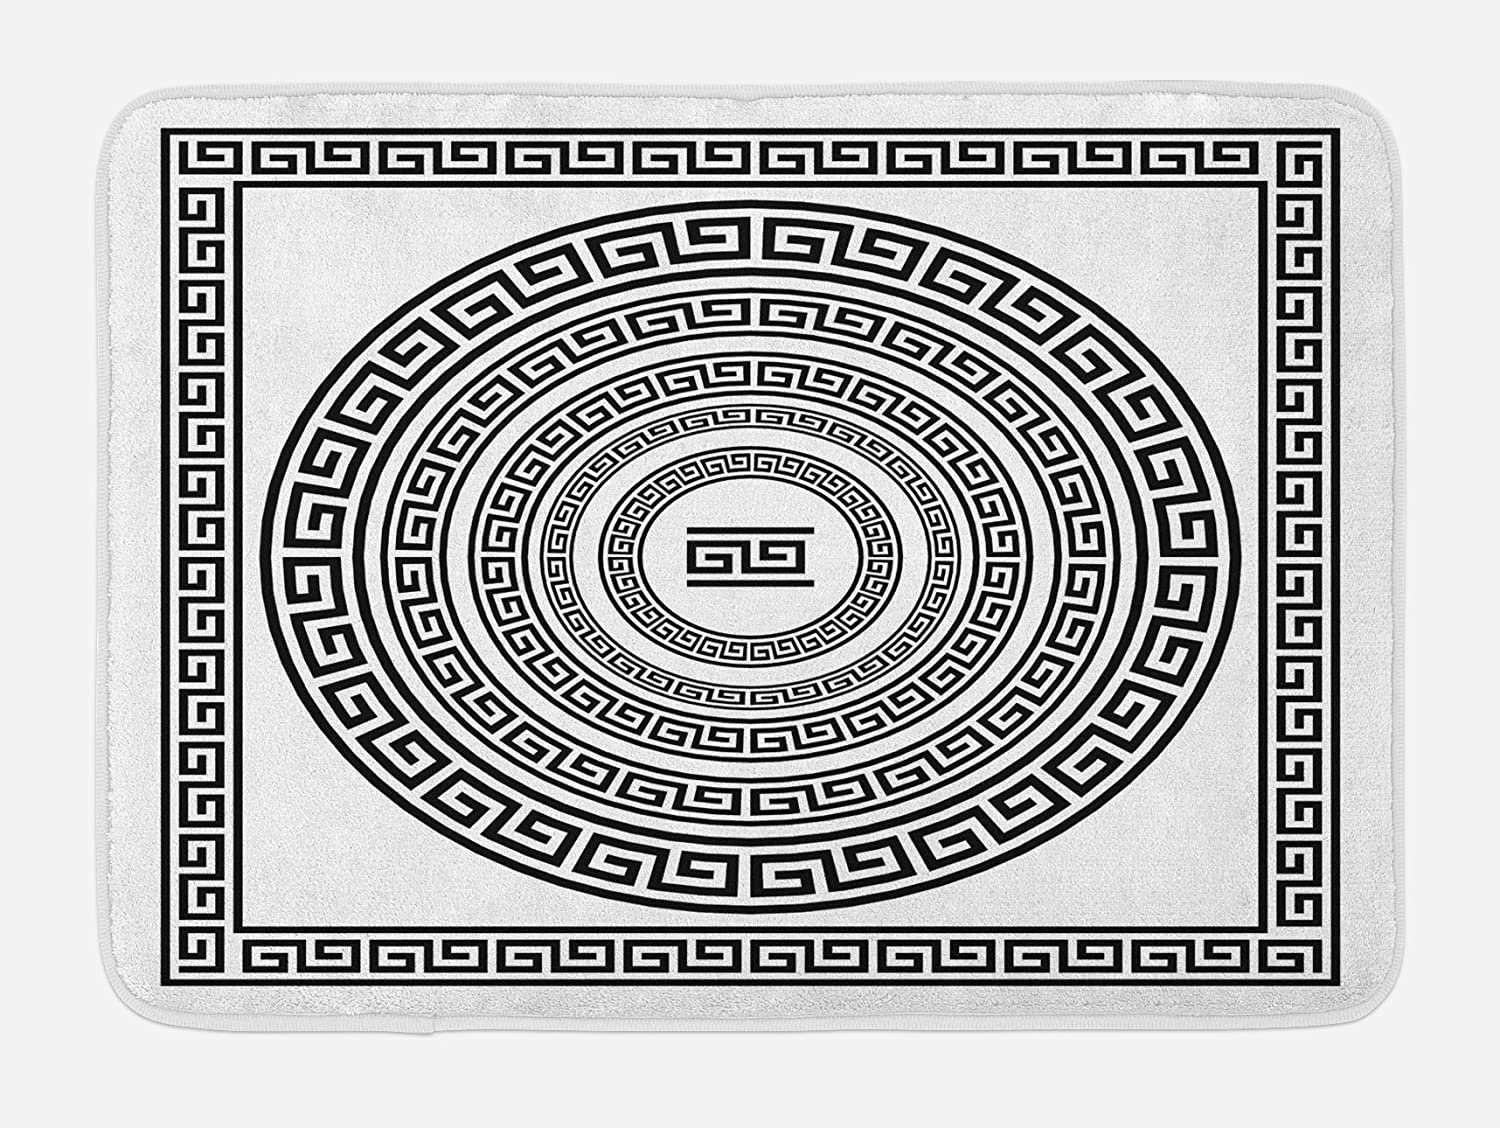 Ambesonne Greek Key Bath Mat, Traditional Meander Border Set Square and Circles Antique Frame Pack, Plush Bathroom Decor Mat with Non Slip Backing, 29.5